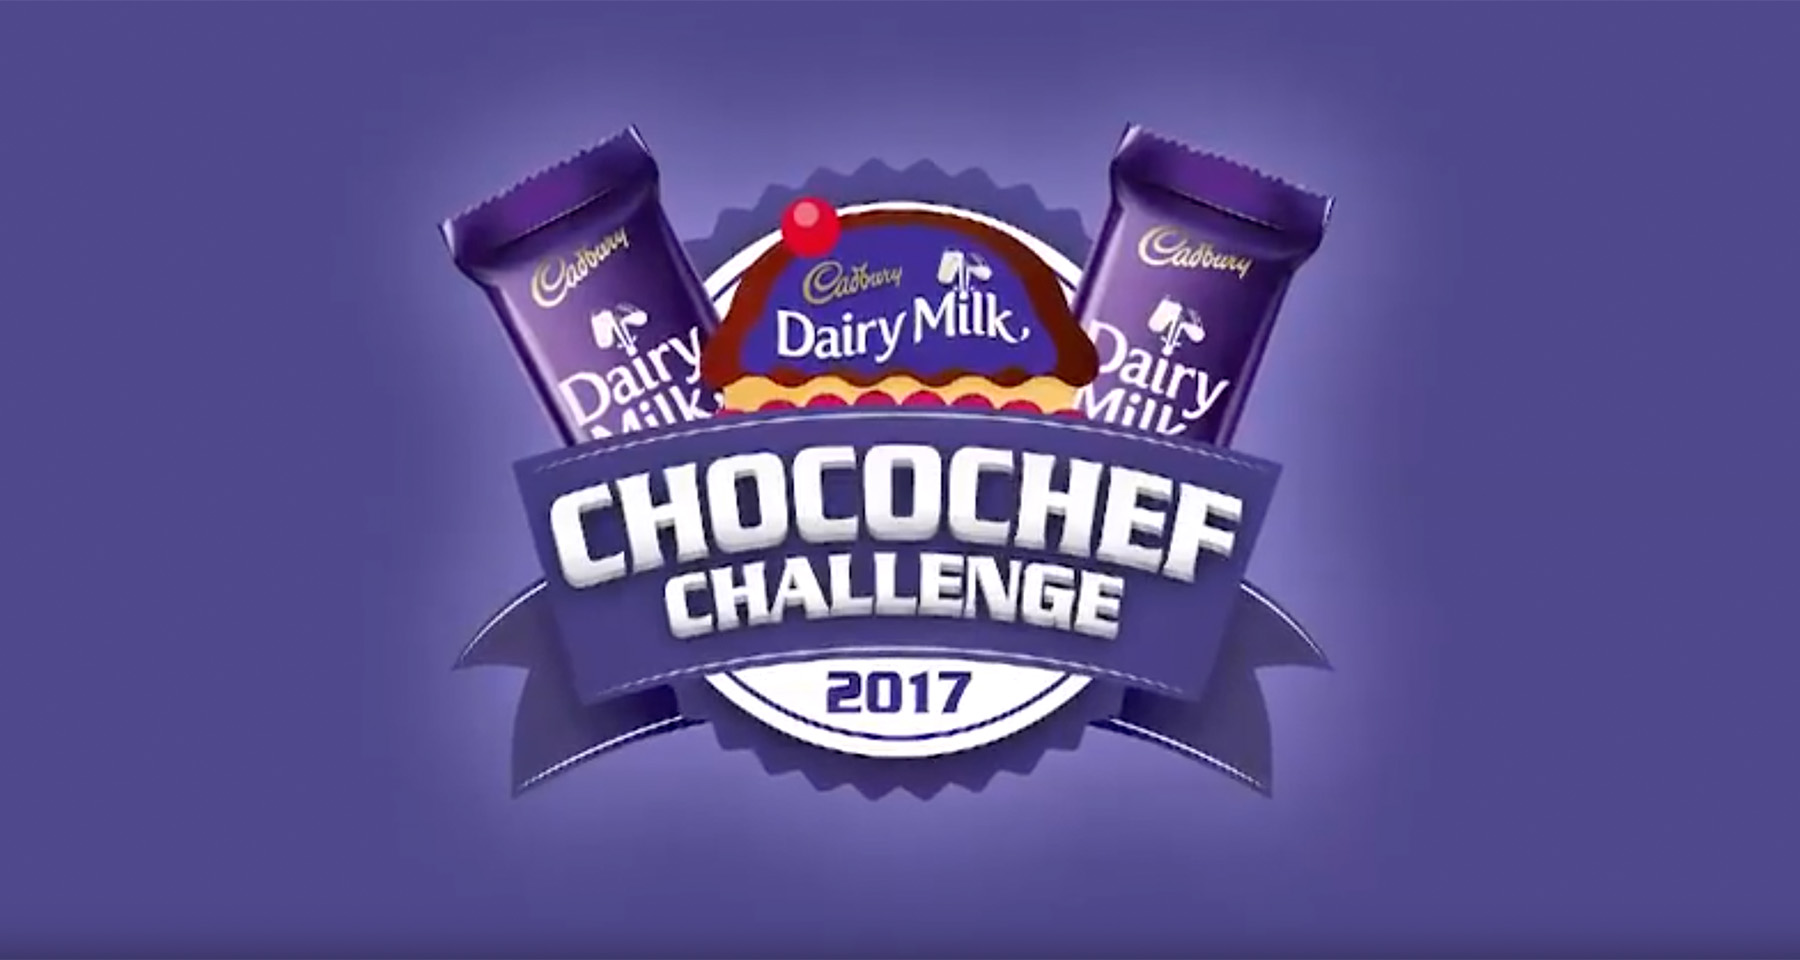 ABP reaches West Bengal market with Cadbury Chocochef competition